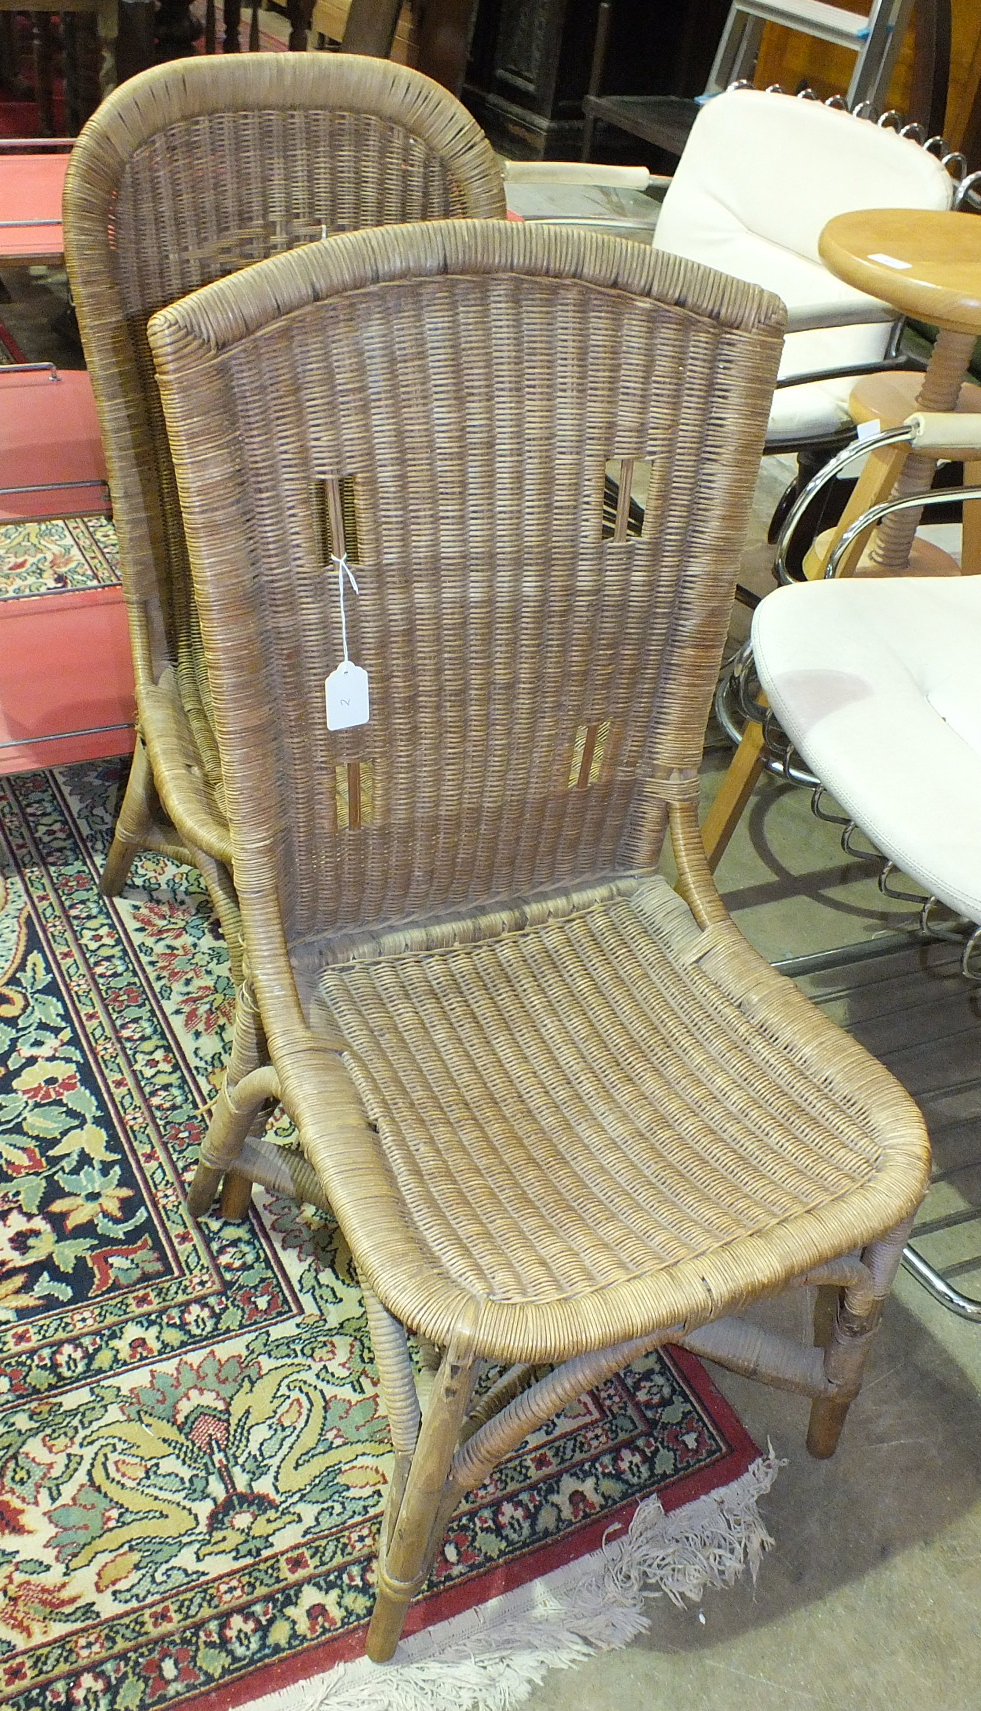 Lot 2 - A Maples & Co. wicker-work chair and a similar chair by Dryad, (2).